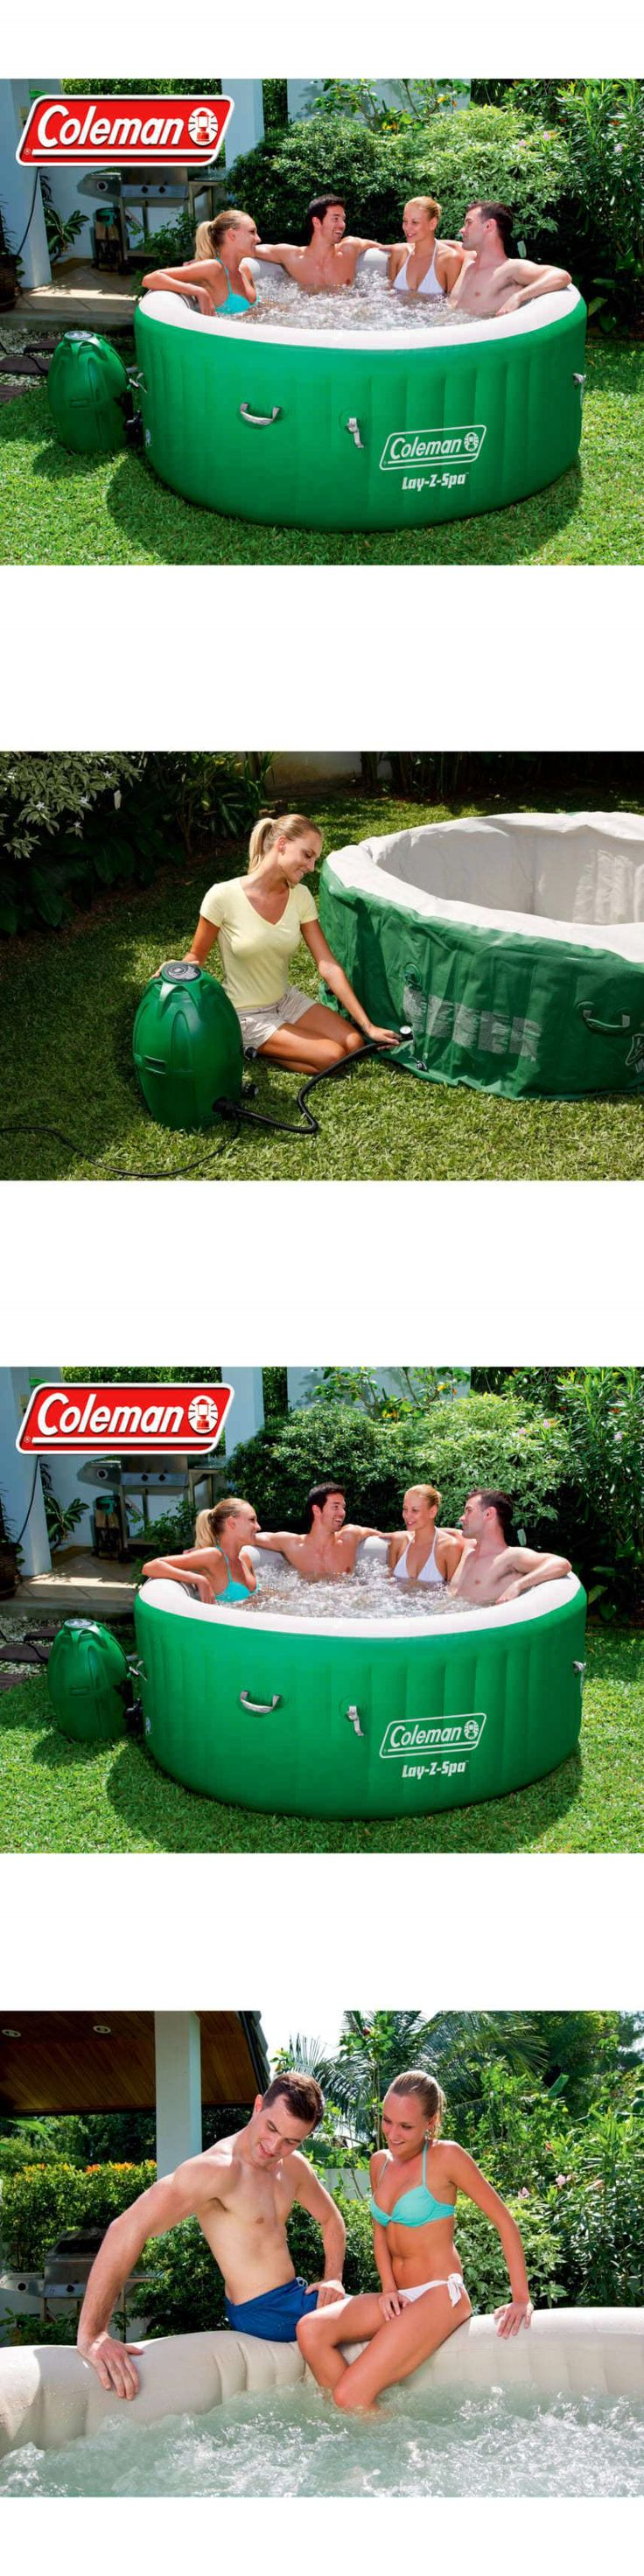 Spas and Hot Tubs 84211: Coleman Lay-Z Massage Portable Spa For 4-6 People -> BUY IT NOW ONLY: $375.73 on eBay!